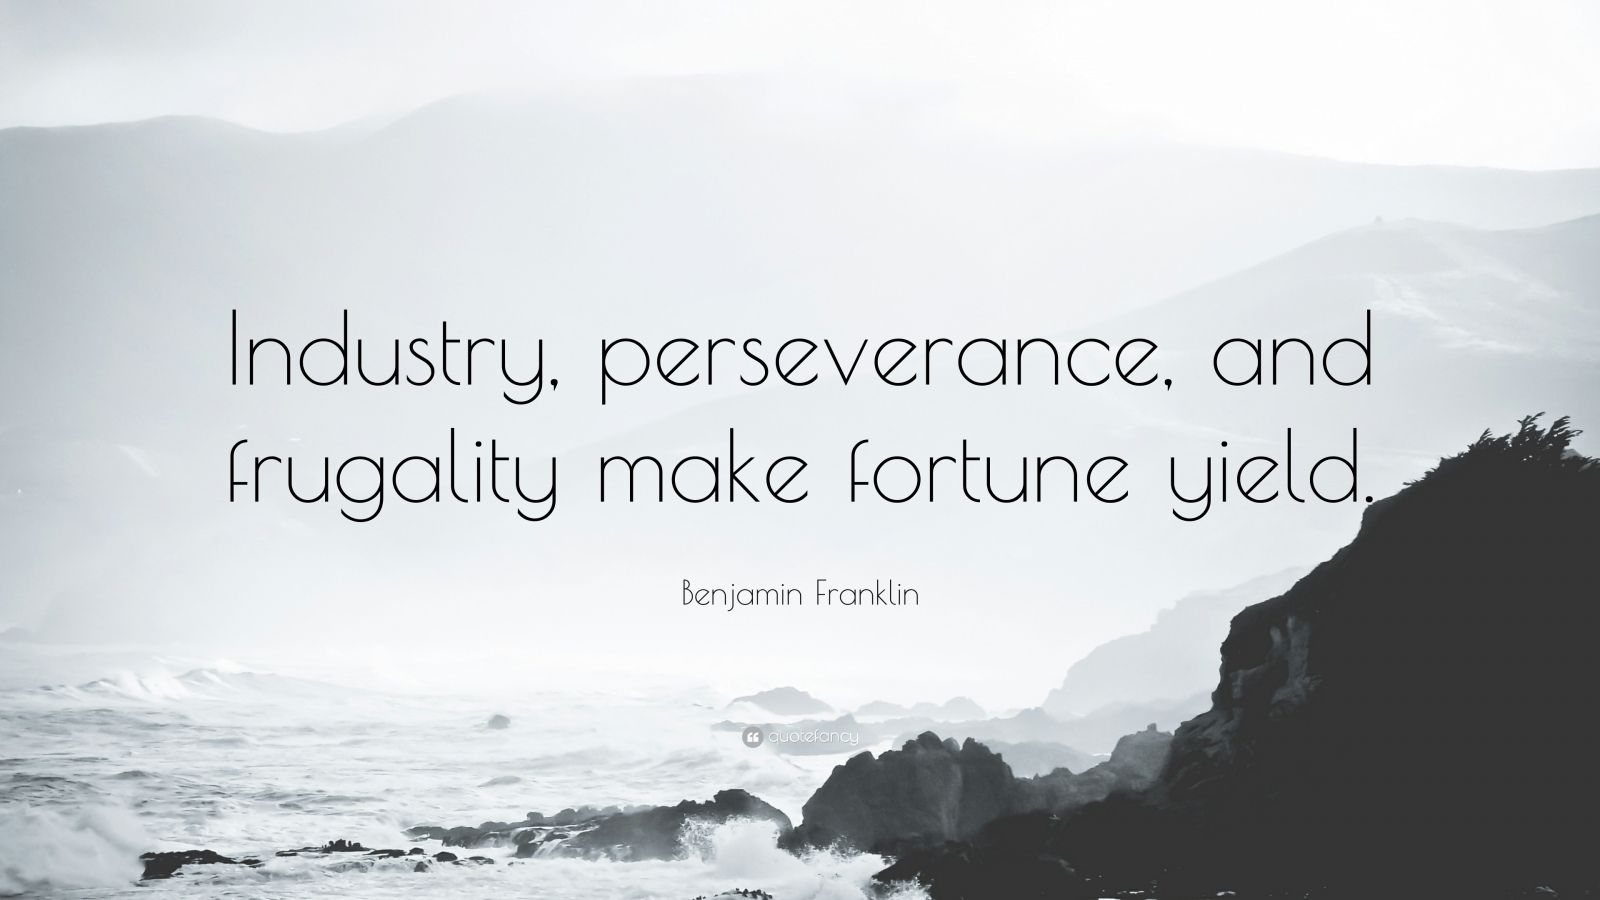 """Benjamin Franklin Quote: """"Industry, perseverance, and frugality make fortune yield."""""""